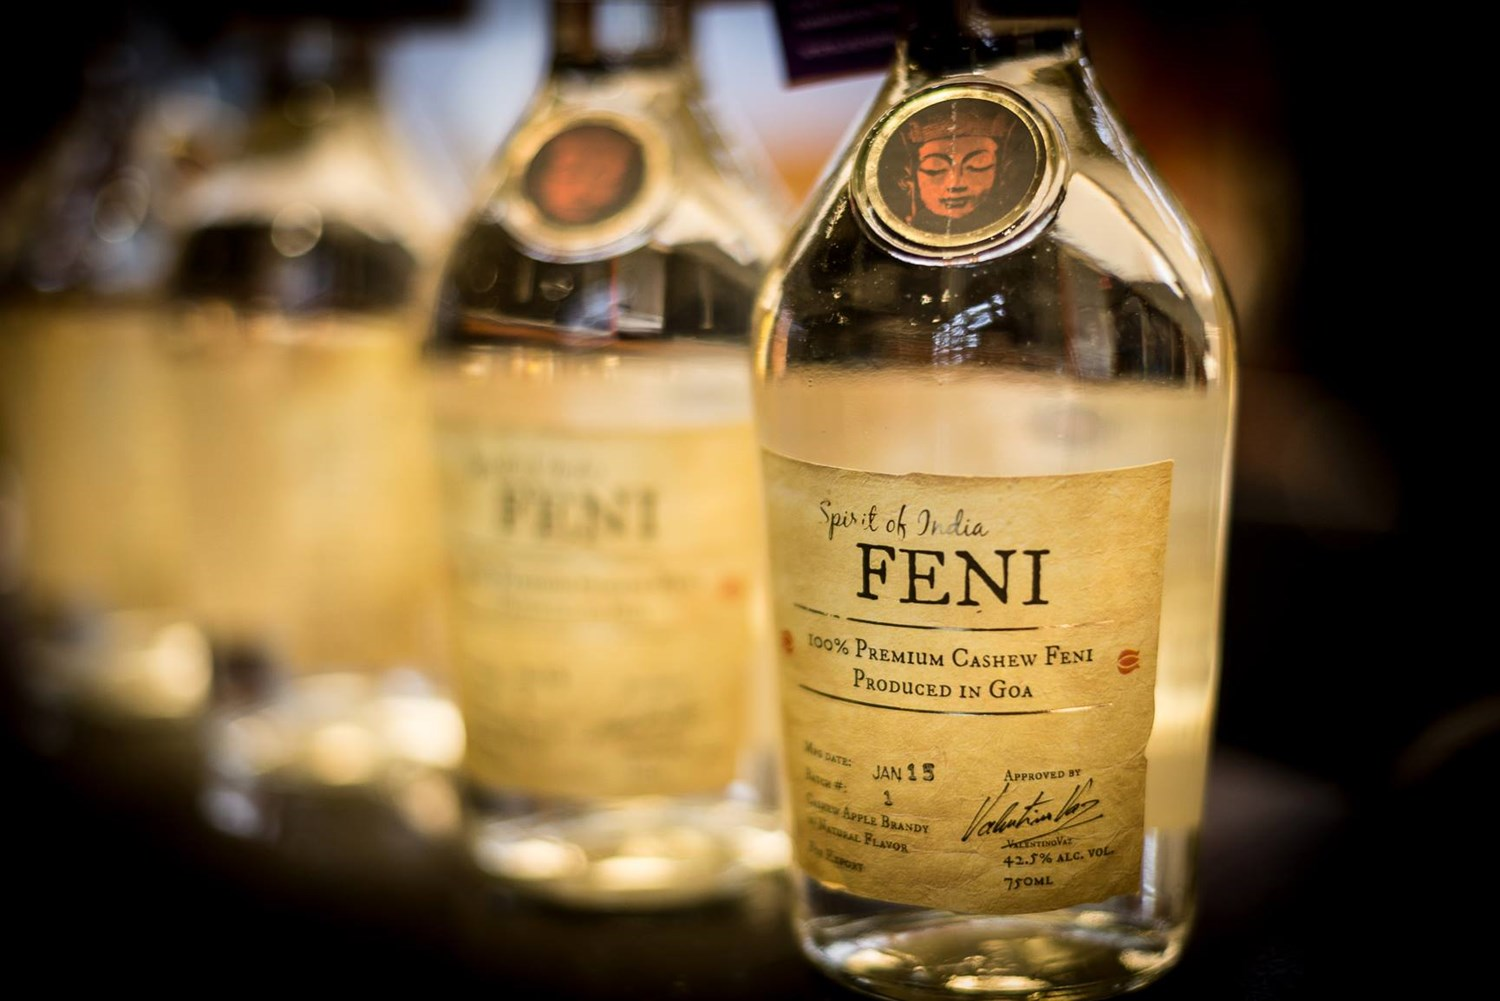 Feni in Goa